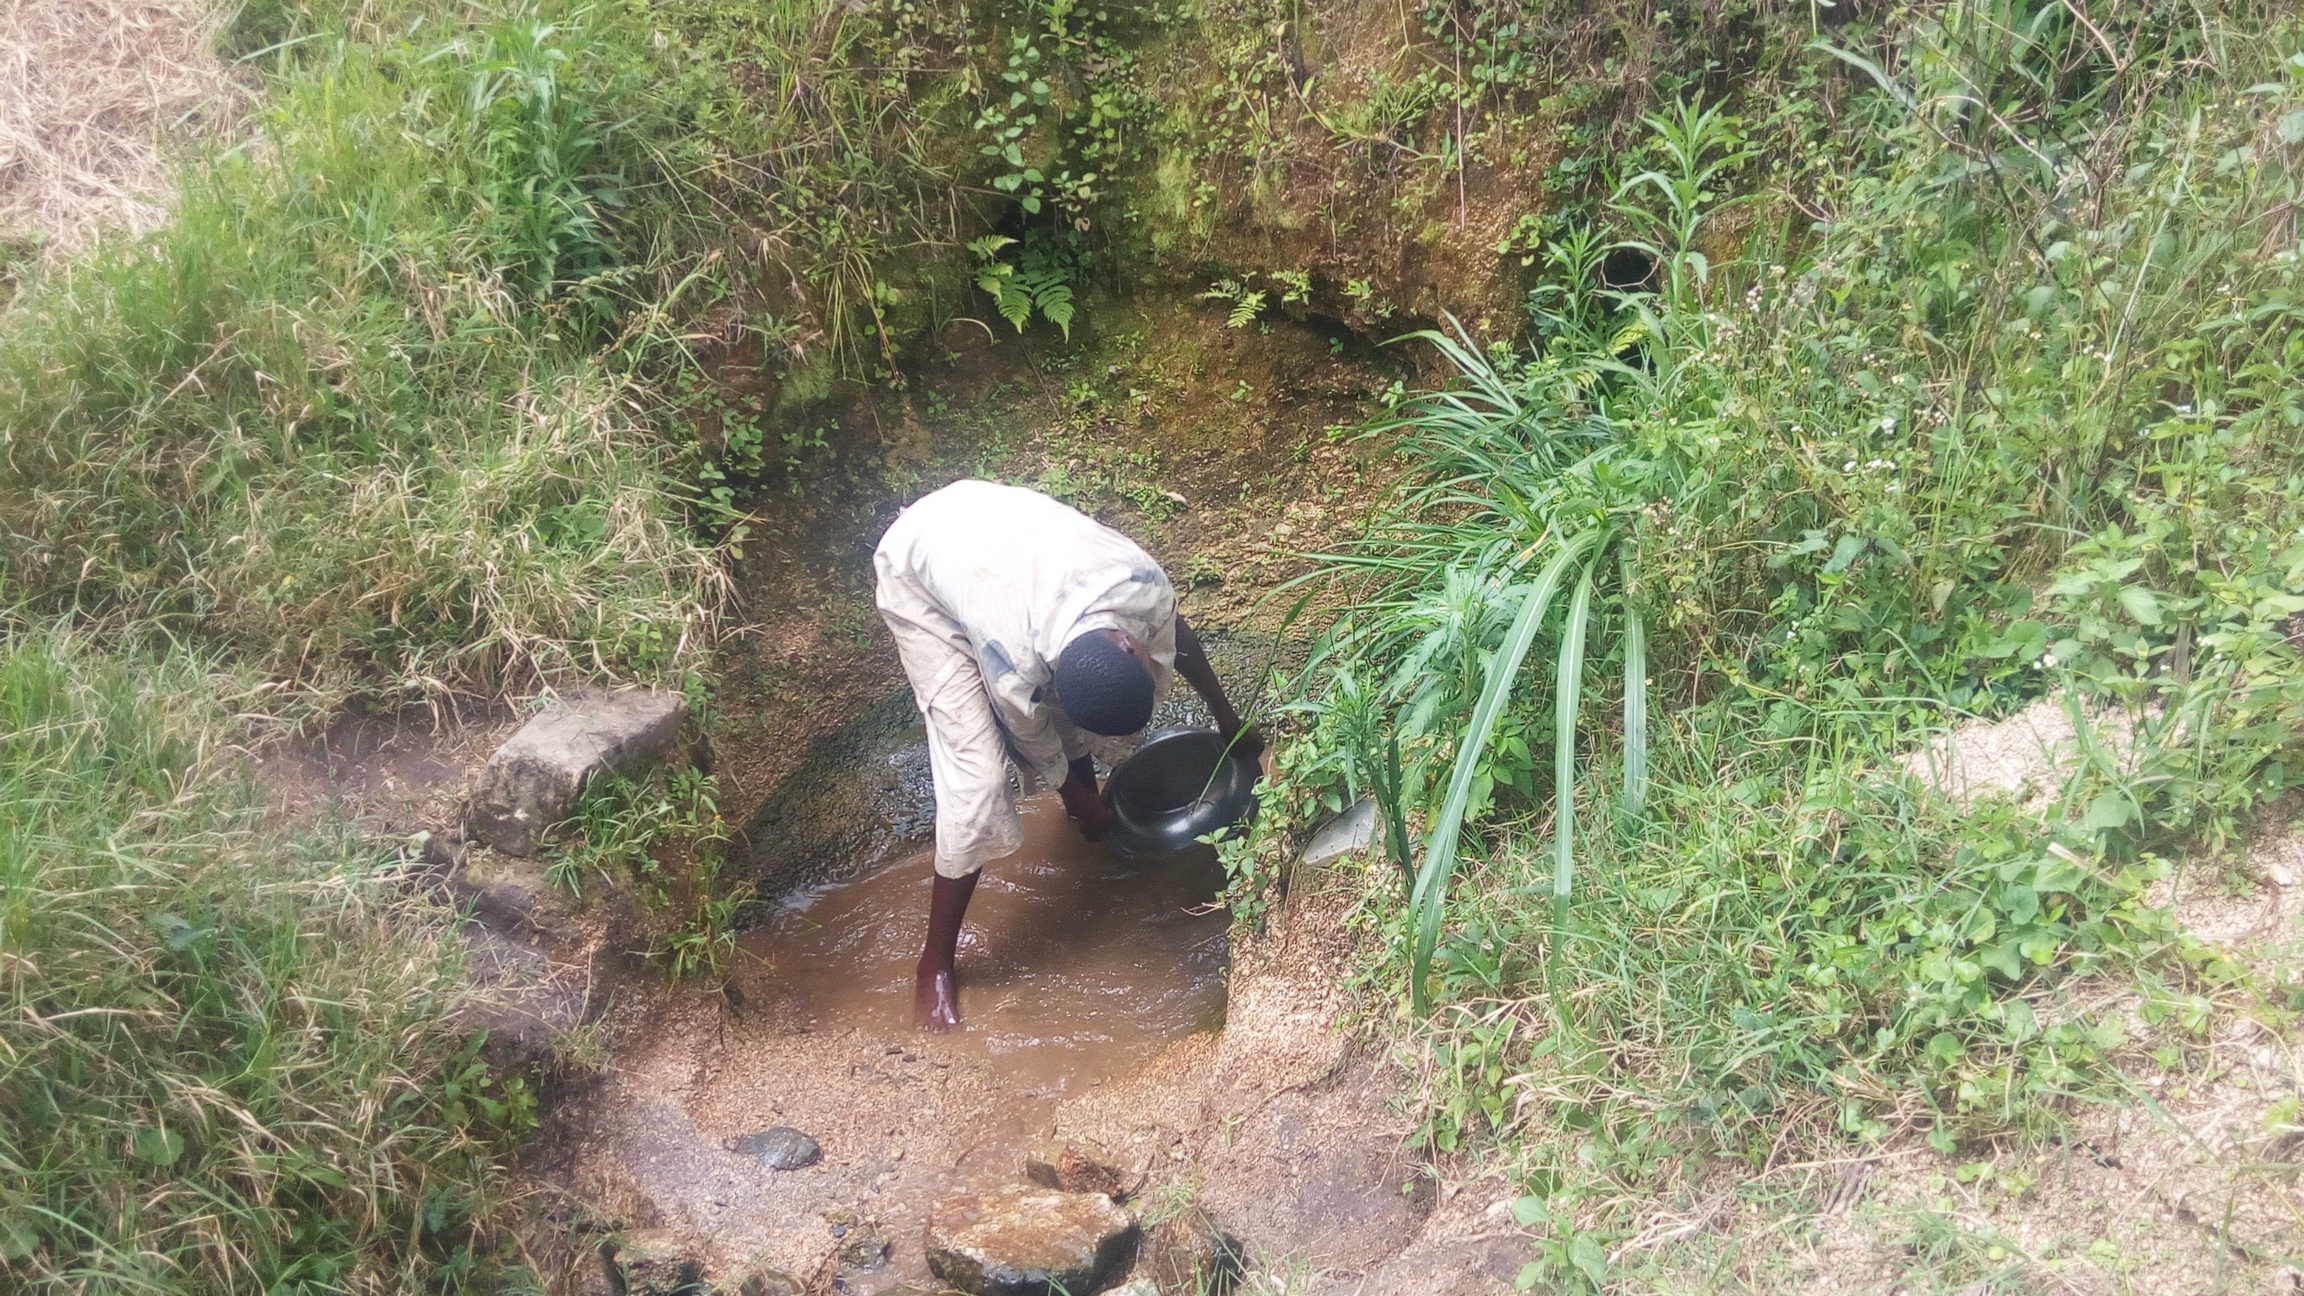 The Water Project : kenya18138-clearing-spring-to-determine-actual-source-of-water